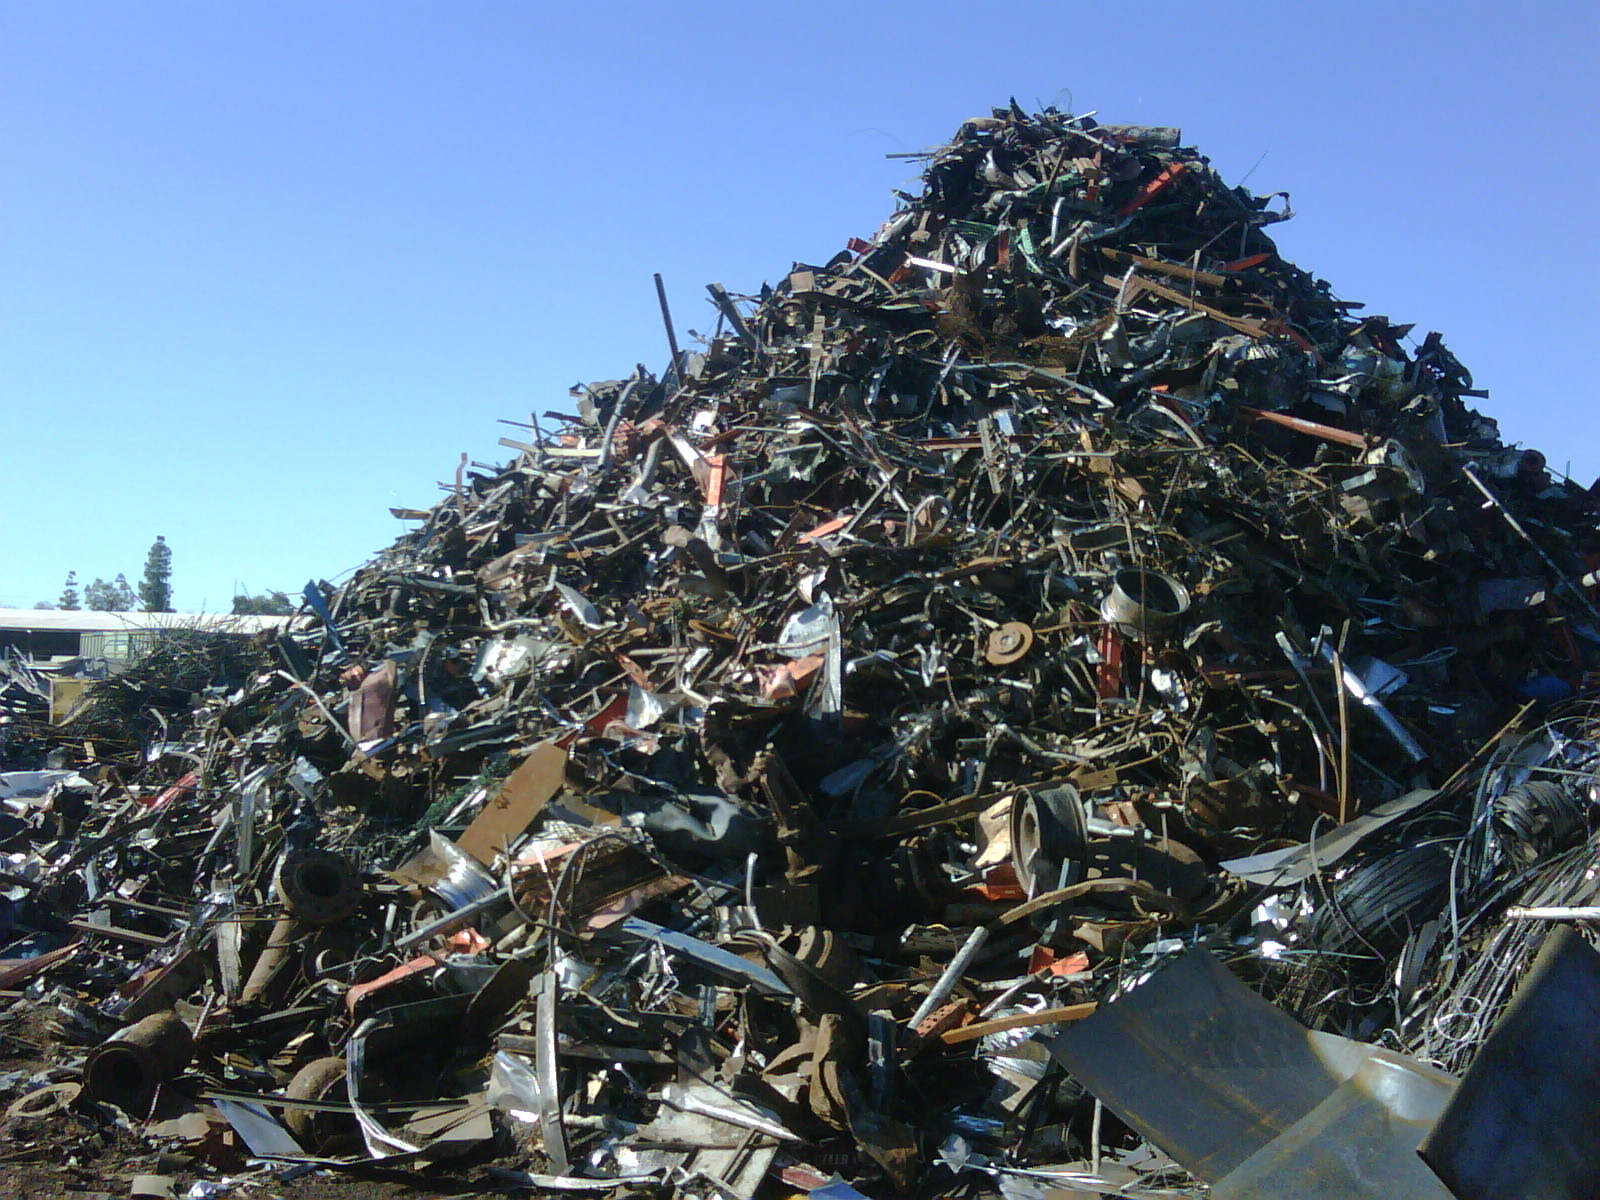 Changes in the scrap industry